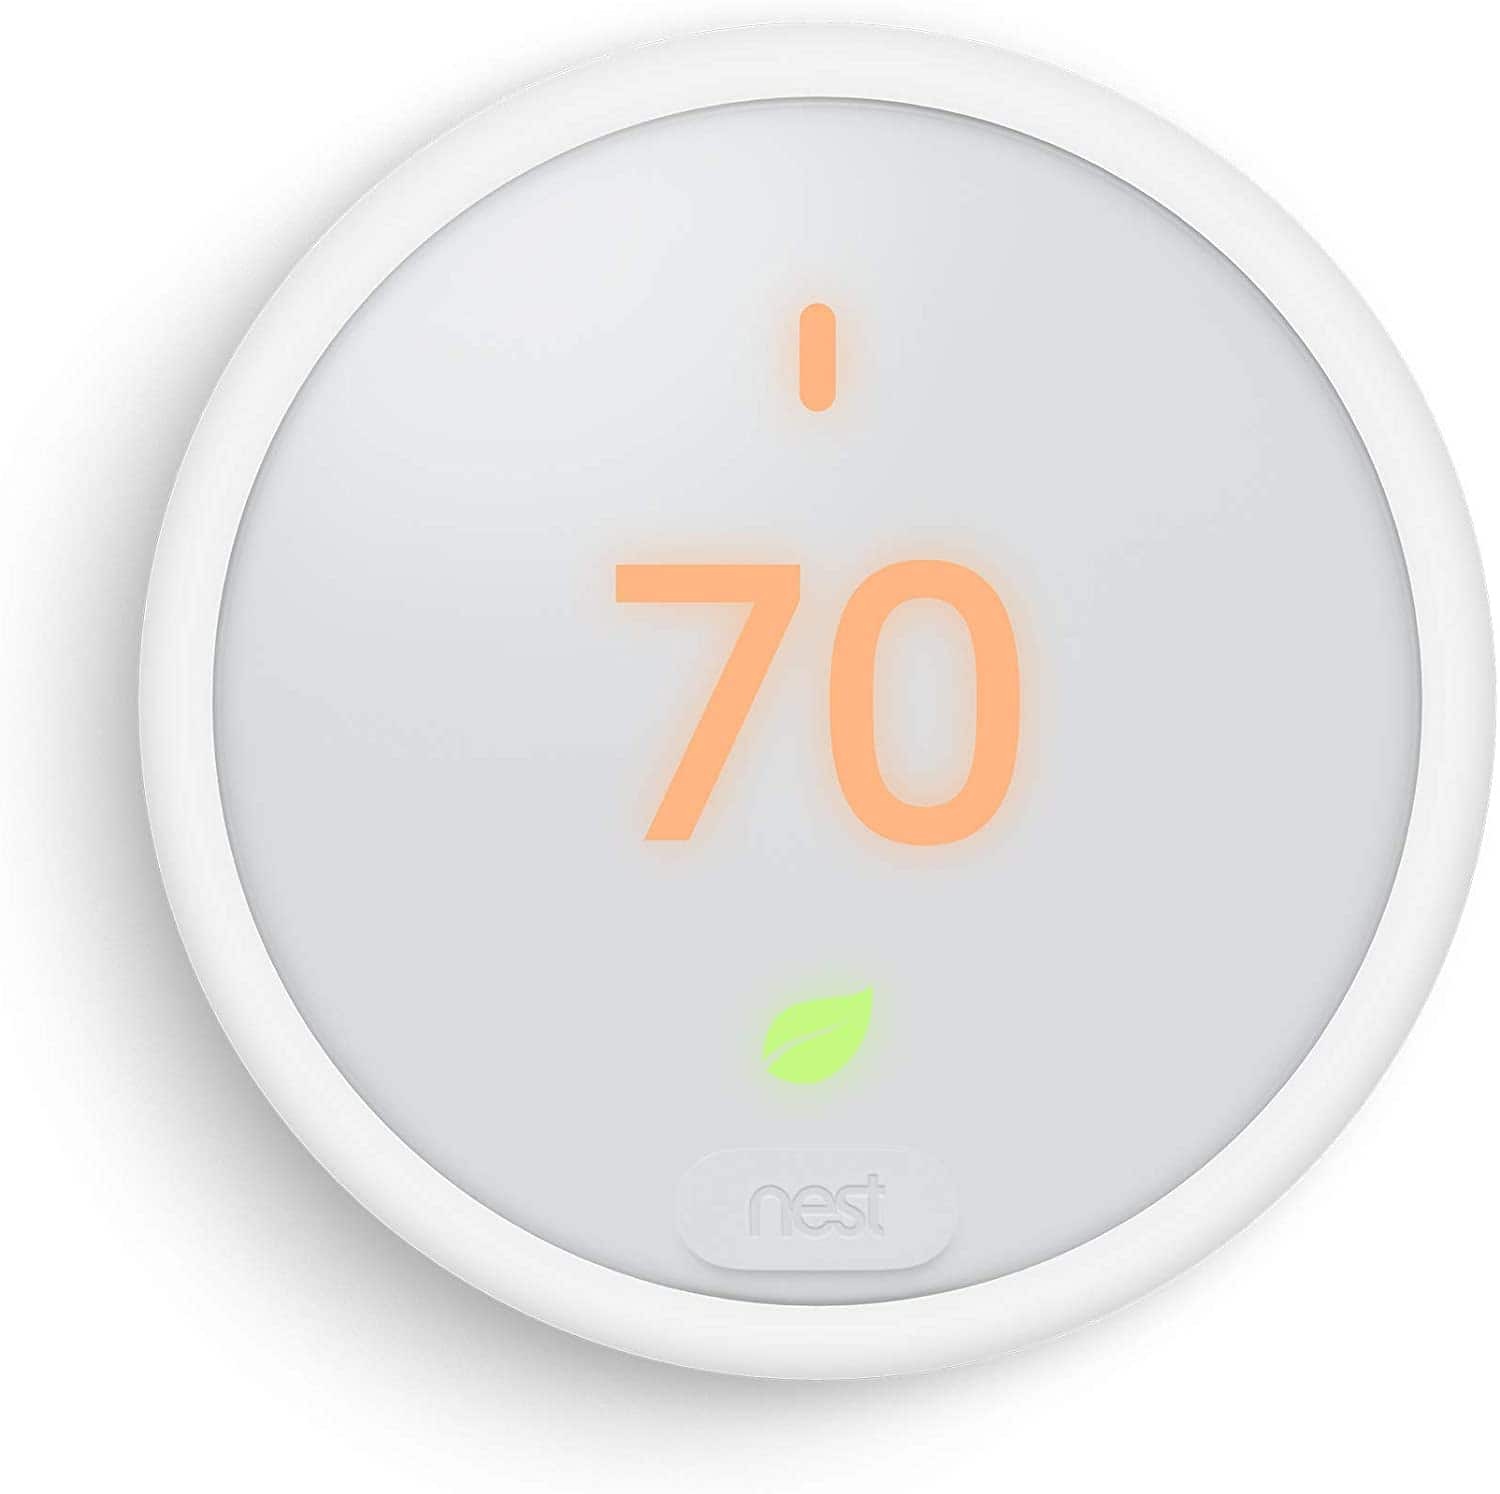 YMMV - Nest Thermostat E - Target Instore Only - $50.70 $50.66